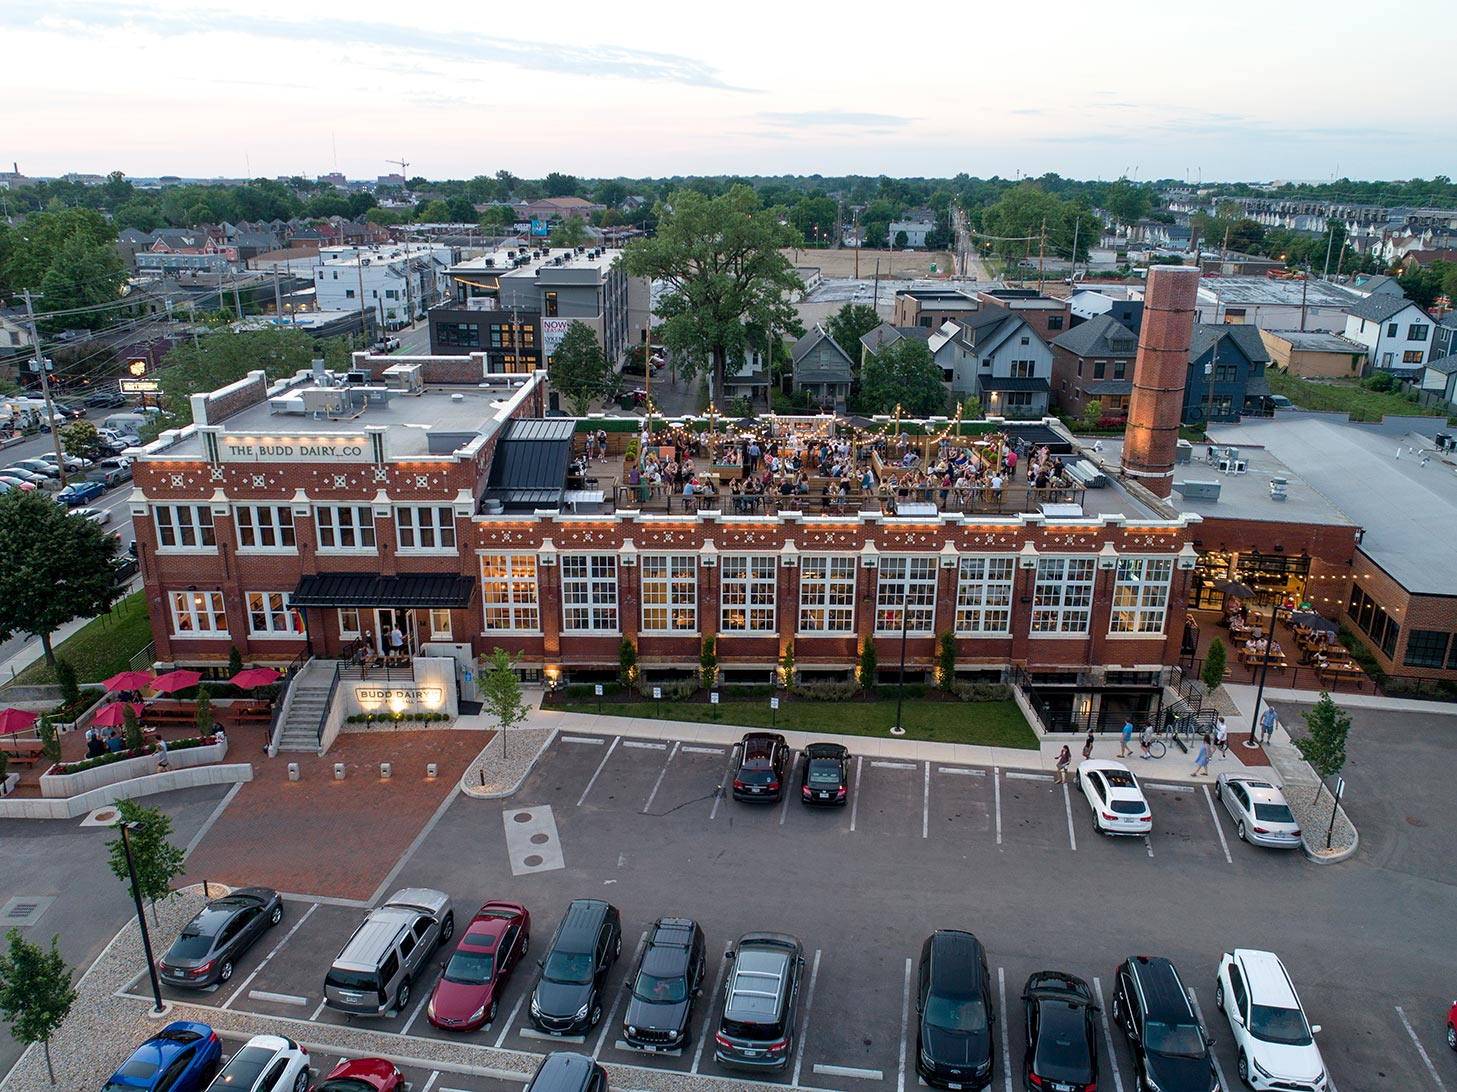 Aerial view of Budd Dairy Food Hall showing main entrance, parking lot and rooftop activity.